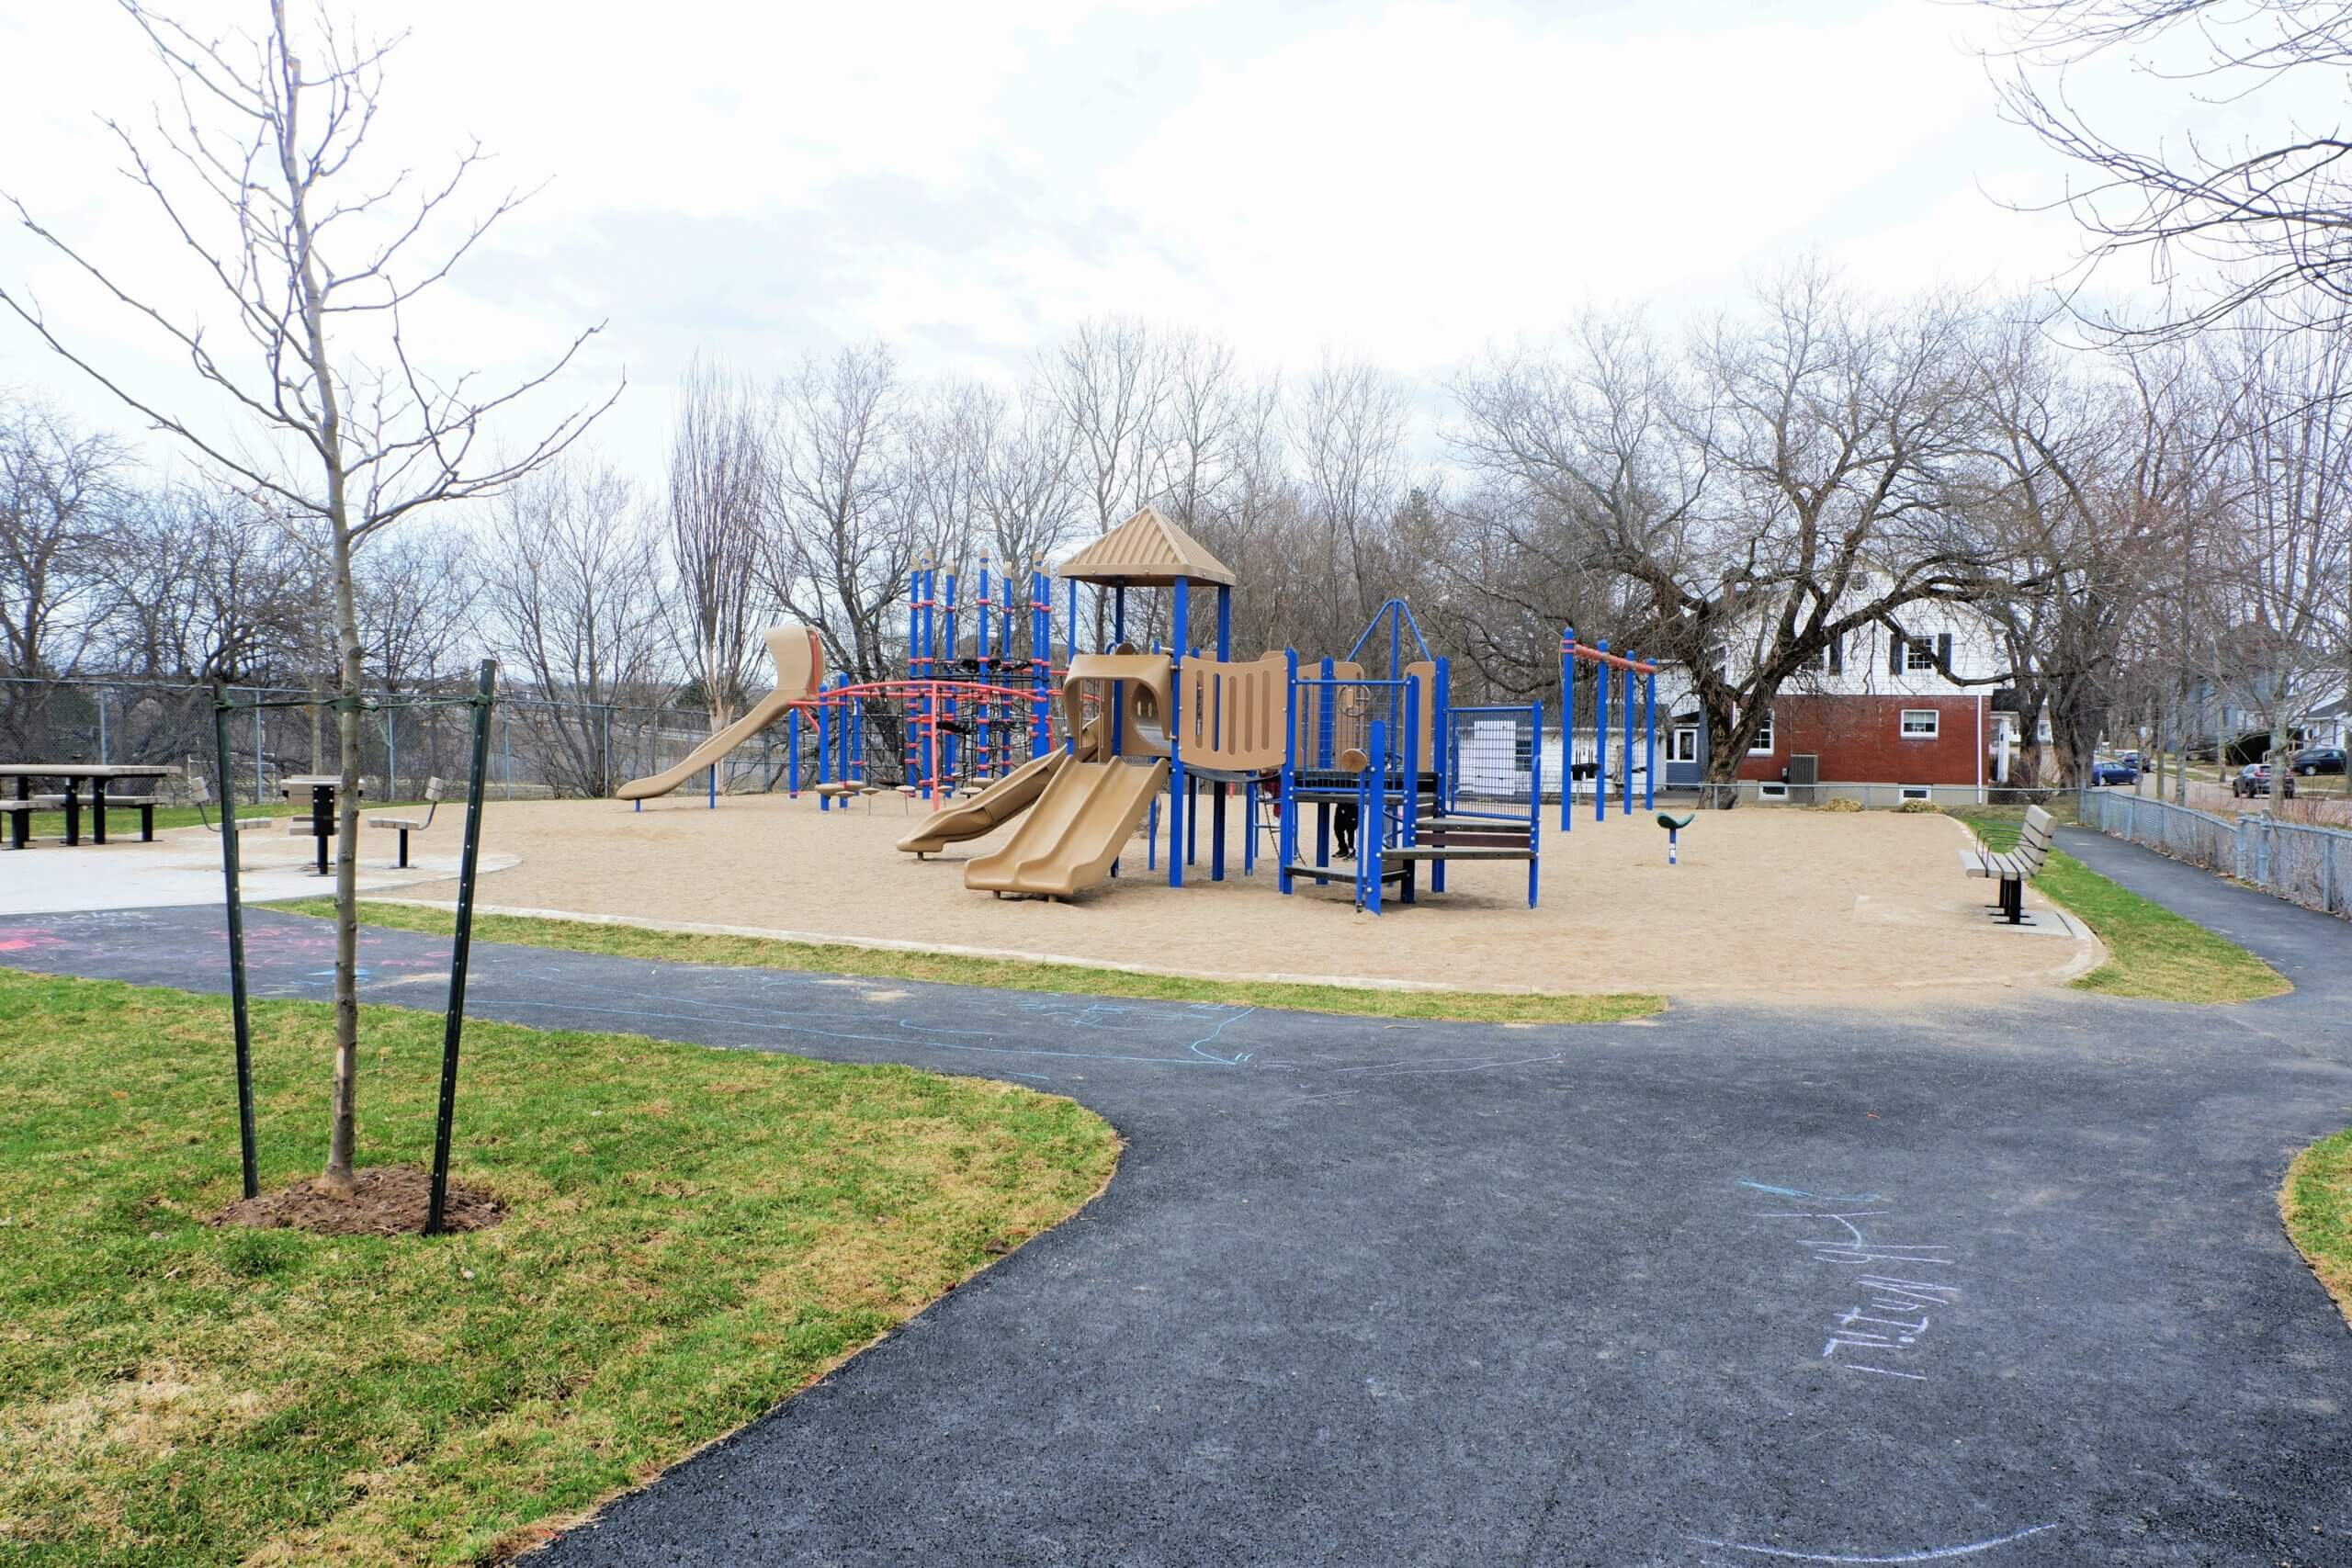 moncton hall's creek marjorie street playground park PICKLE PLANET good places to go when learning to ride a bike in moncton